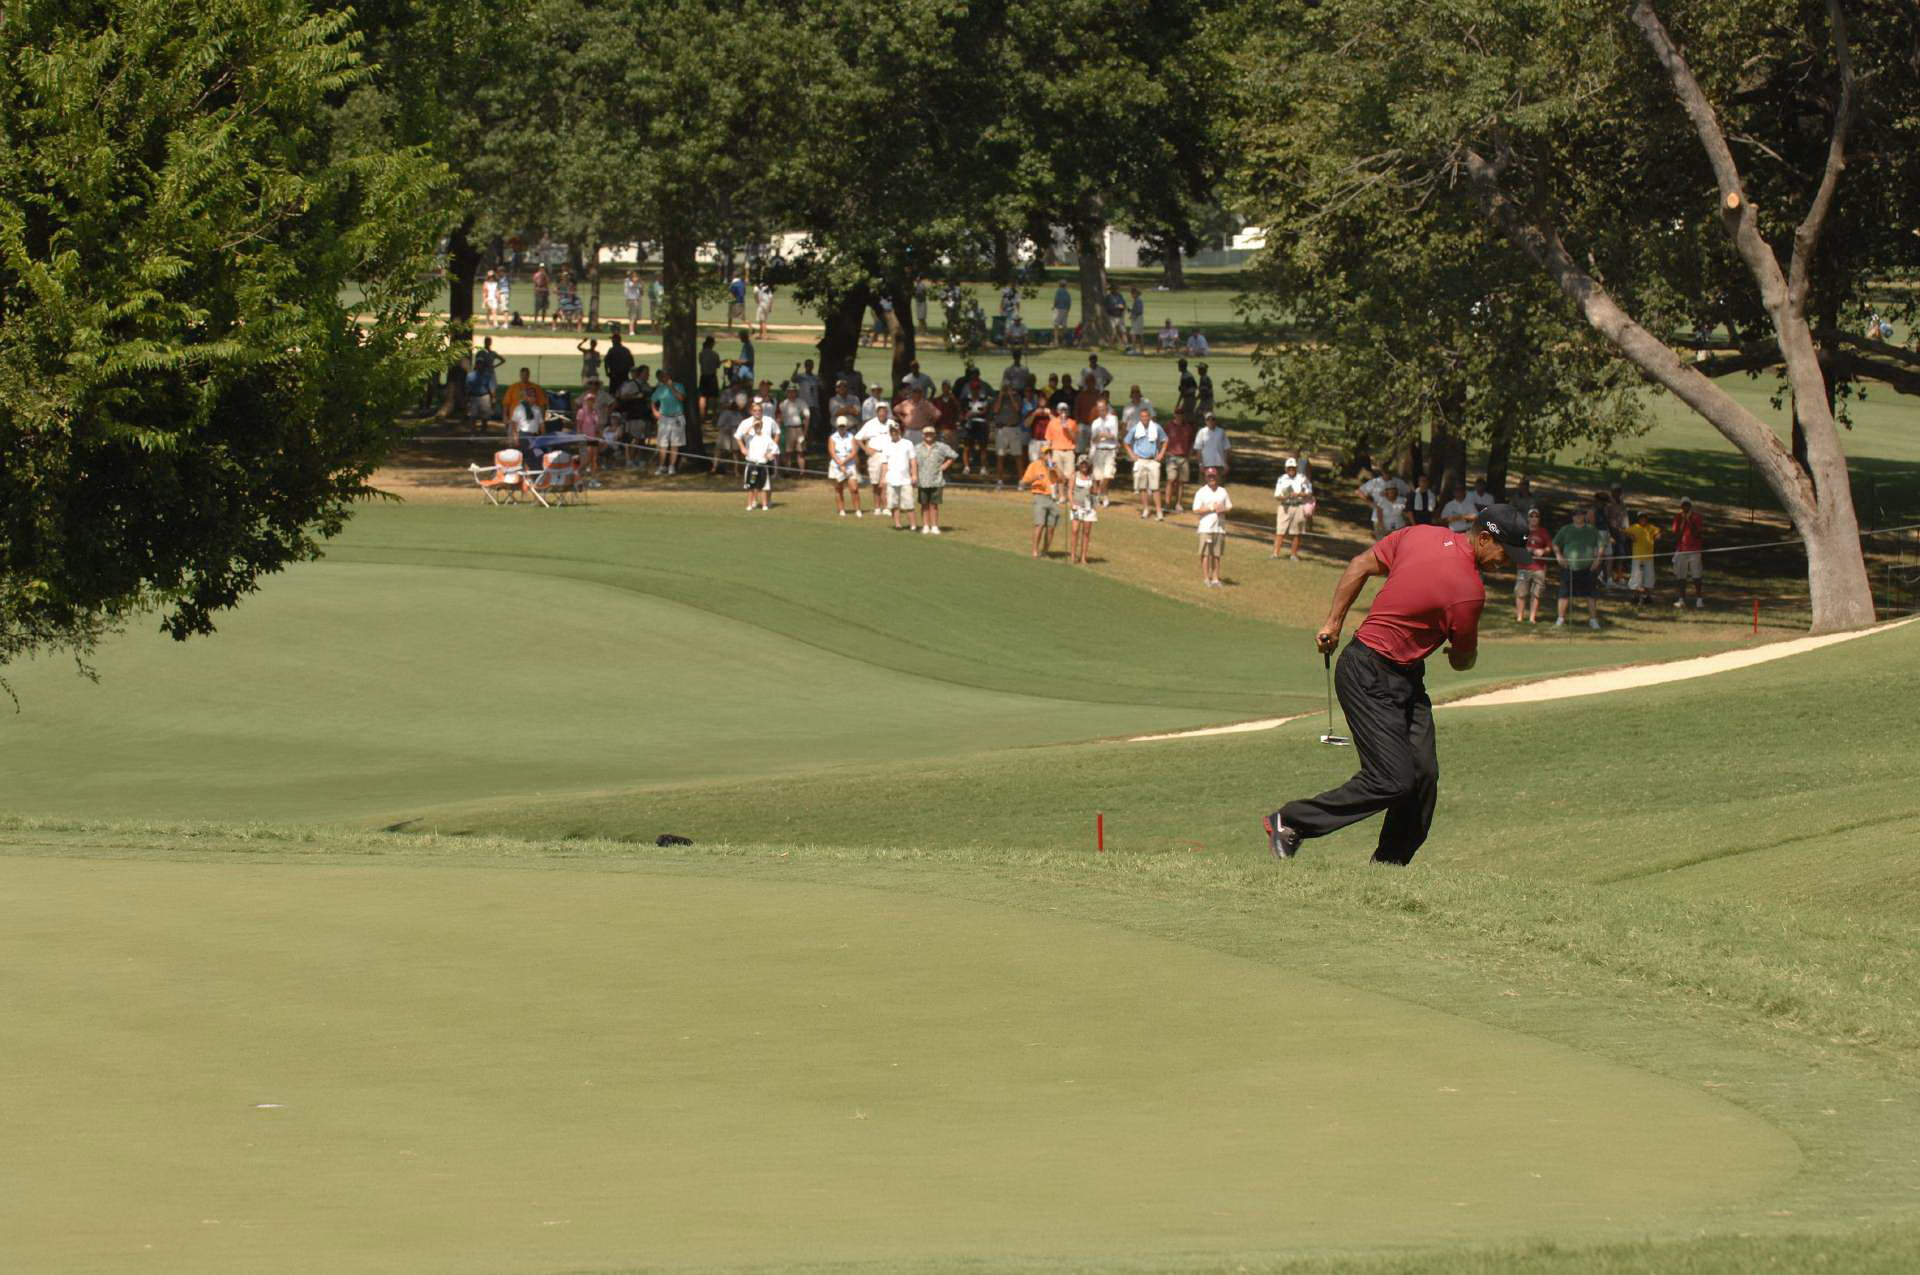 After holing a birdie putt on No. 8, Tiger unleashed his biggest fist pump of the day.